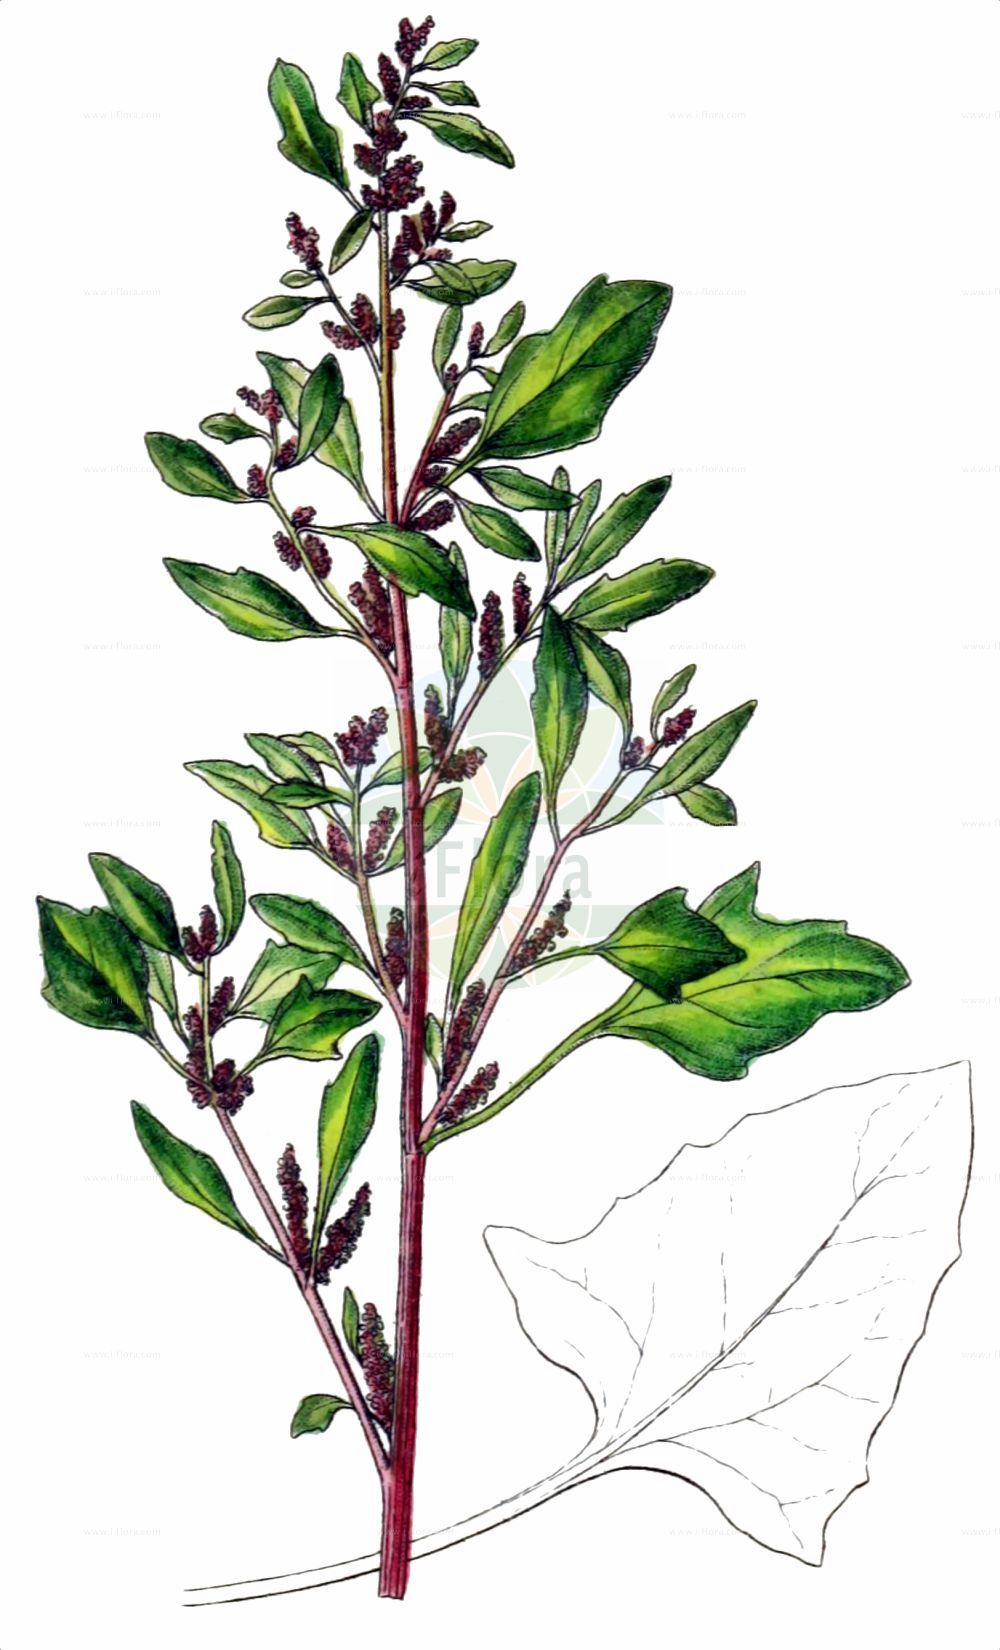 Historische Abbildung von Oxybasis chenopodioides (Dickblaettriger Gaensefuss - Saltmarsh Goosefoot). Das Bild zeigt Blatt, Bluete, Frucht und Same. ---- Historical Drawing of Oxybasis chenopodioides (Dickblaettriger Gaensefuss - Saltmarsh Goosefoot).The image is showing leaf, flower, fruit and seed.(Oxybasis chenopodioides,Dickblaettriger Gaensefuss,Saltmarsh Goosefoot,Blitum chenopodioides,Chenopodium botryodes,Chenopodium chenopodioides,Chenopodium crassifolium,Oxybasis chenopodioides,Dickblaettriger Gaensefuss,Dickblatt-Gaensefuss,Saltmarsh Goosefoot,Low Goosefoot,Sea Goosefoot,Oxybasis,Amaranthaceae,Fuchsschwanzgewaechse,Pigweed family,Blatt,Bluete,Frucht,Same,leaf,flower,fruit,seed,Sturm (1796f))